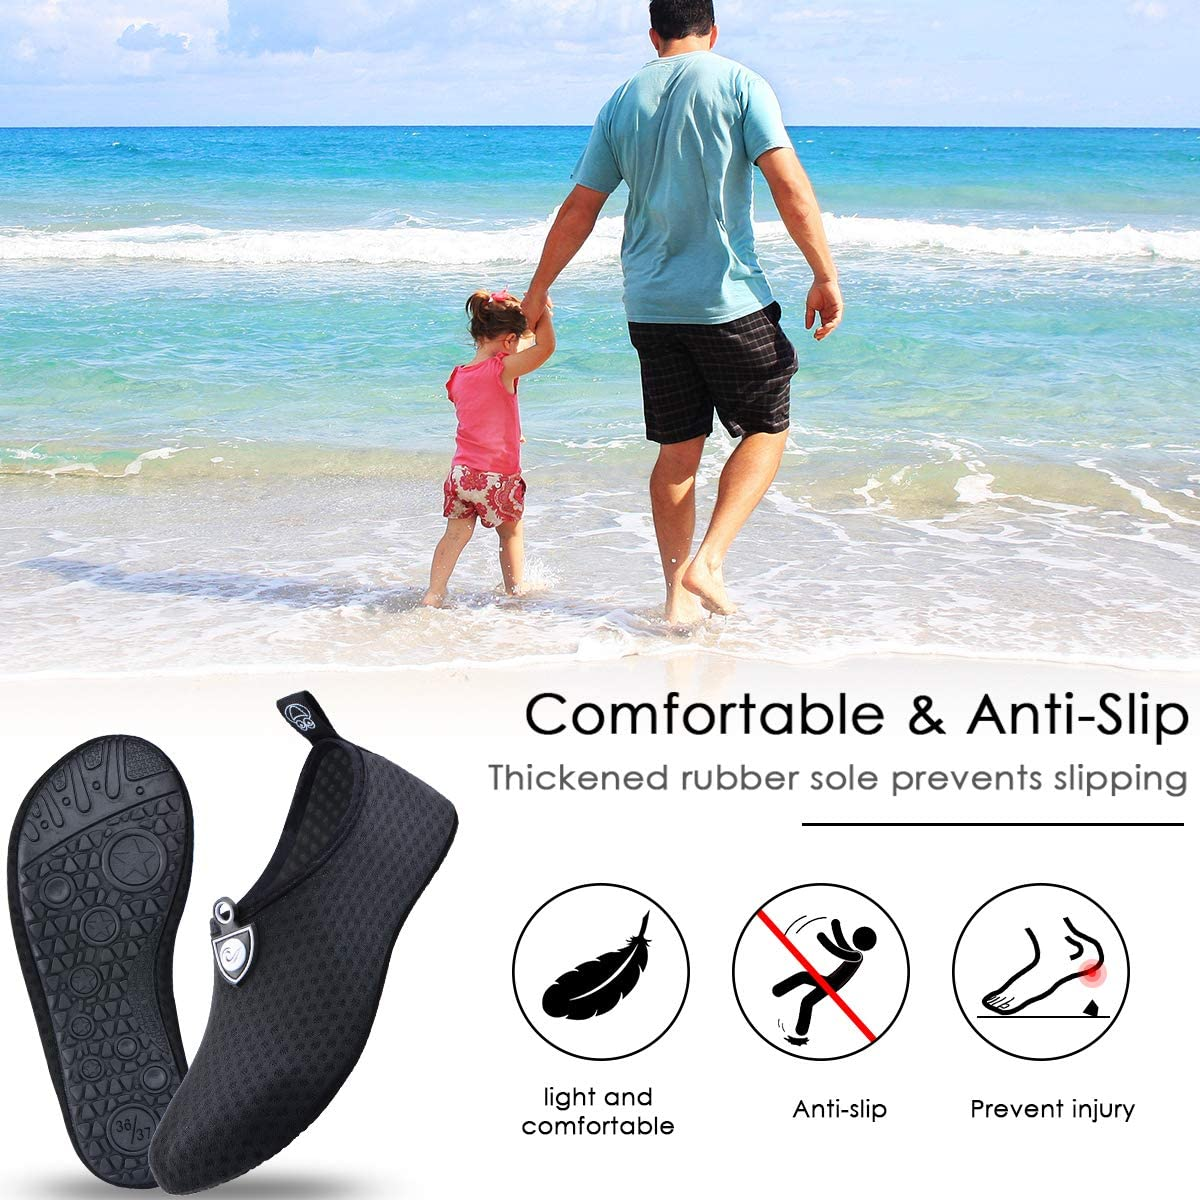   EOMTAM Water Shoes for Women and Men, Water Socks for Women Barefoot Quick-Dry Aqua Yoga Socks, Slip-on for Outdoor Beach Swim Sports Yoga Snorkeling   Water Shoes